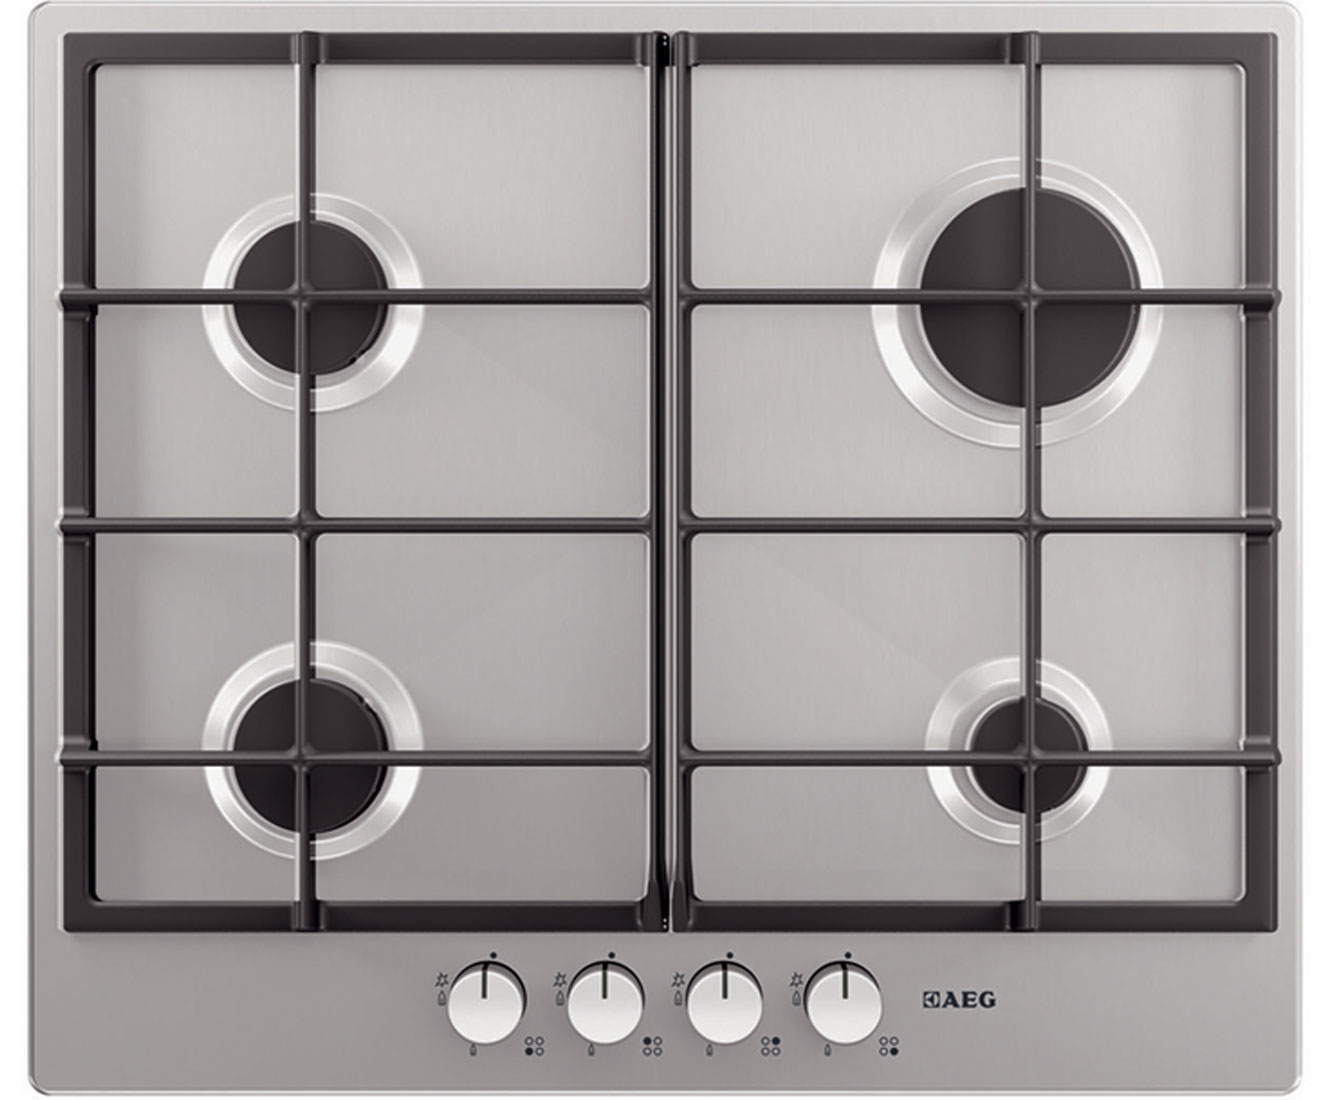 AEG Competence HG654320NM Integrated Gas Hob in Stainless Steel